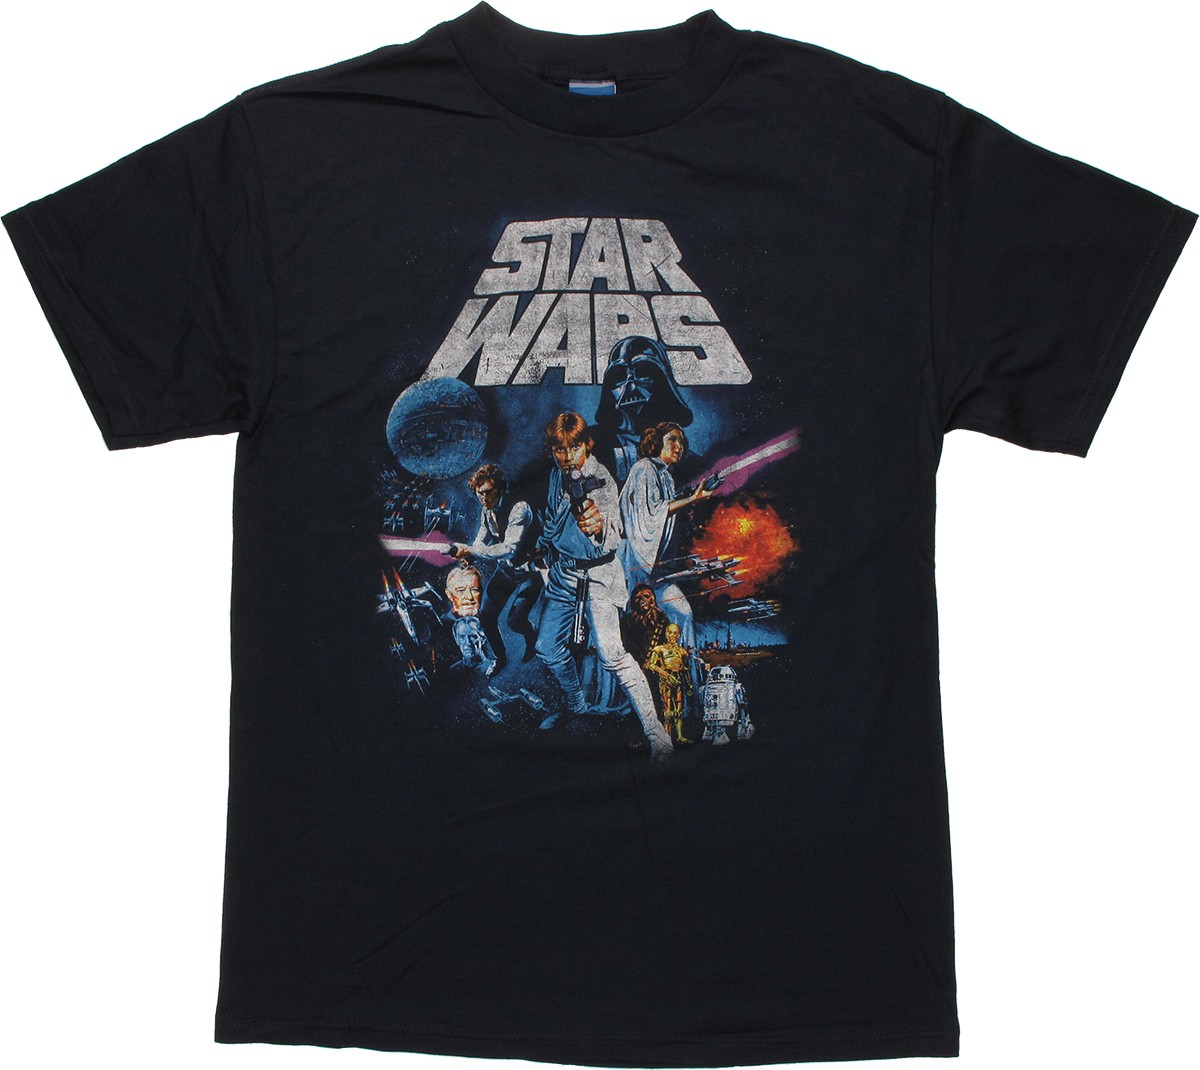 Star Wars Vintage T Shirt 50